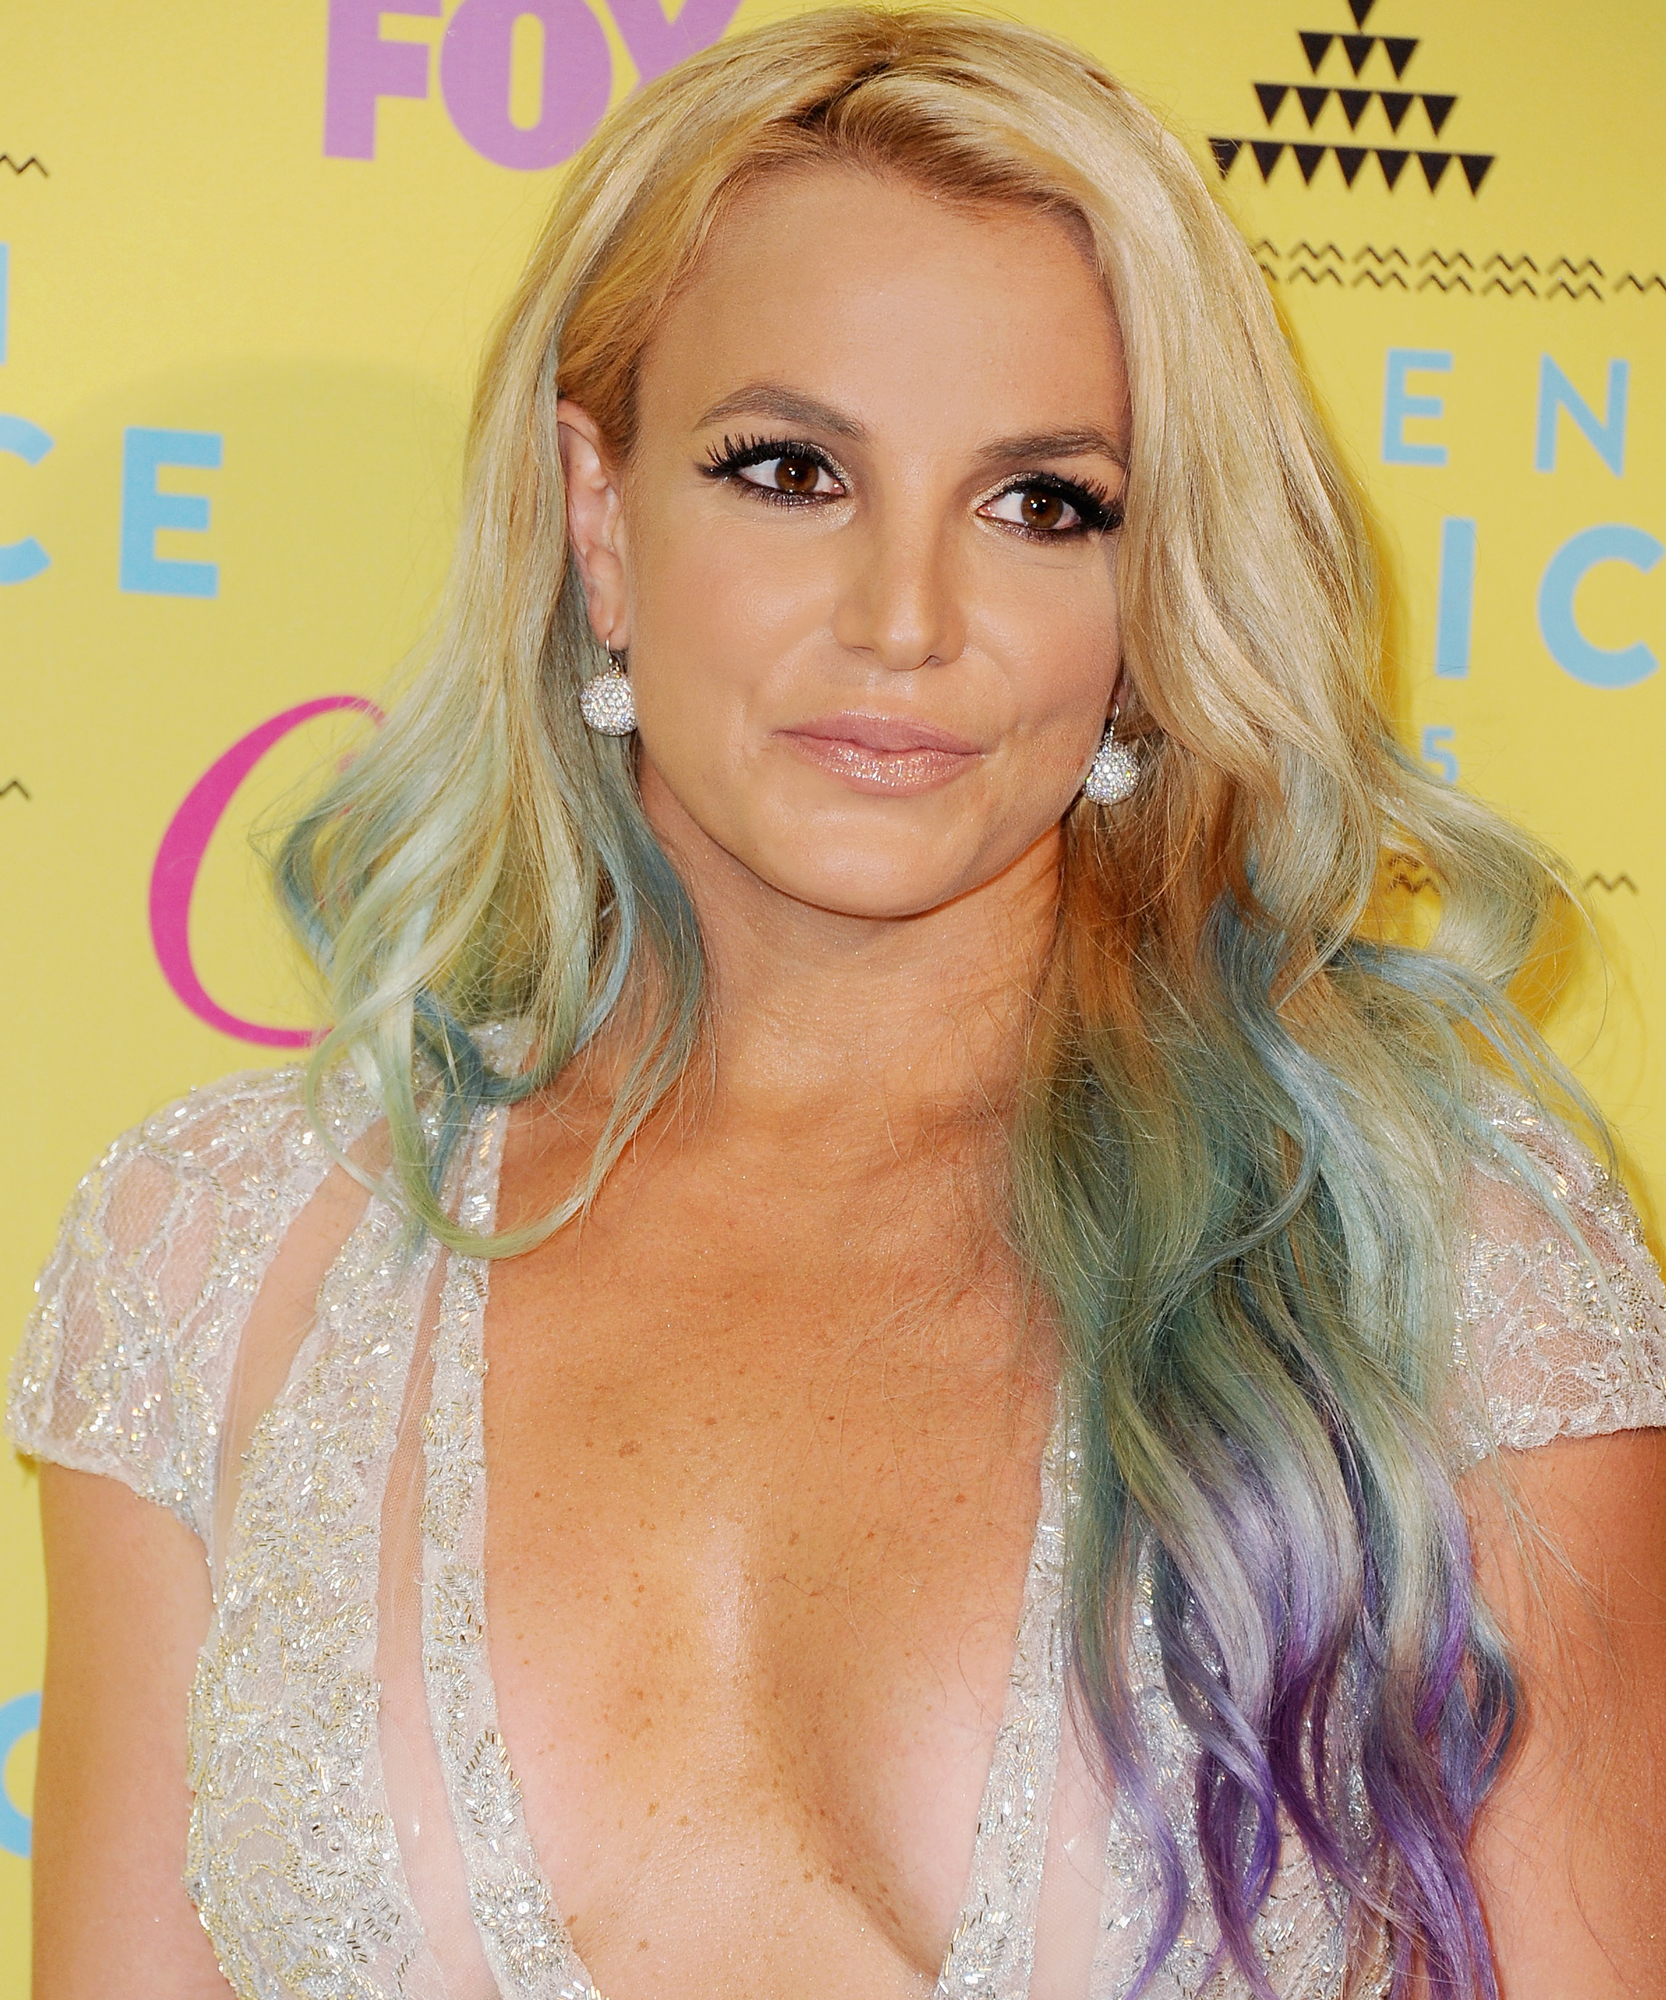 Singer Britney Spears poses in the press room at the Teen Choice Awards 2015 at Galen Center on August 16, 2015 in Los Angeles, California.